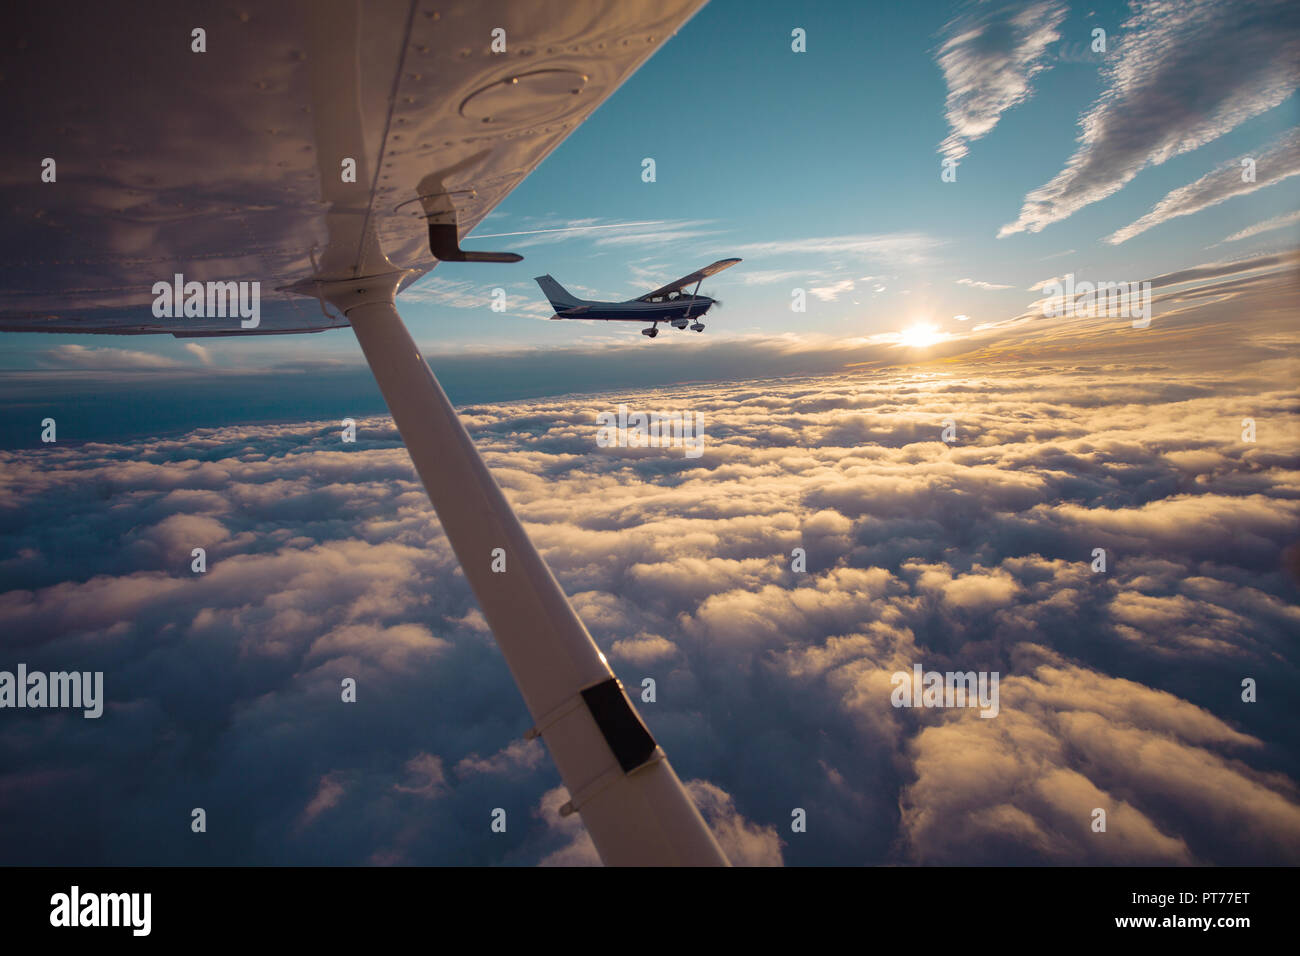 Small single engine airplane flying in the gorgeous sunset sky through the sea of clouds - Stock Image